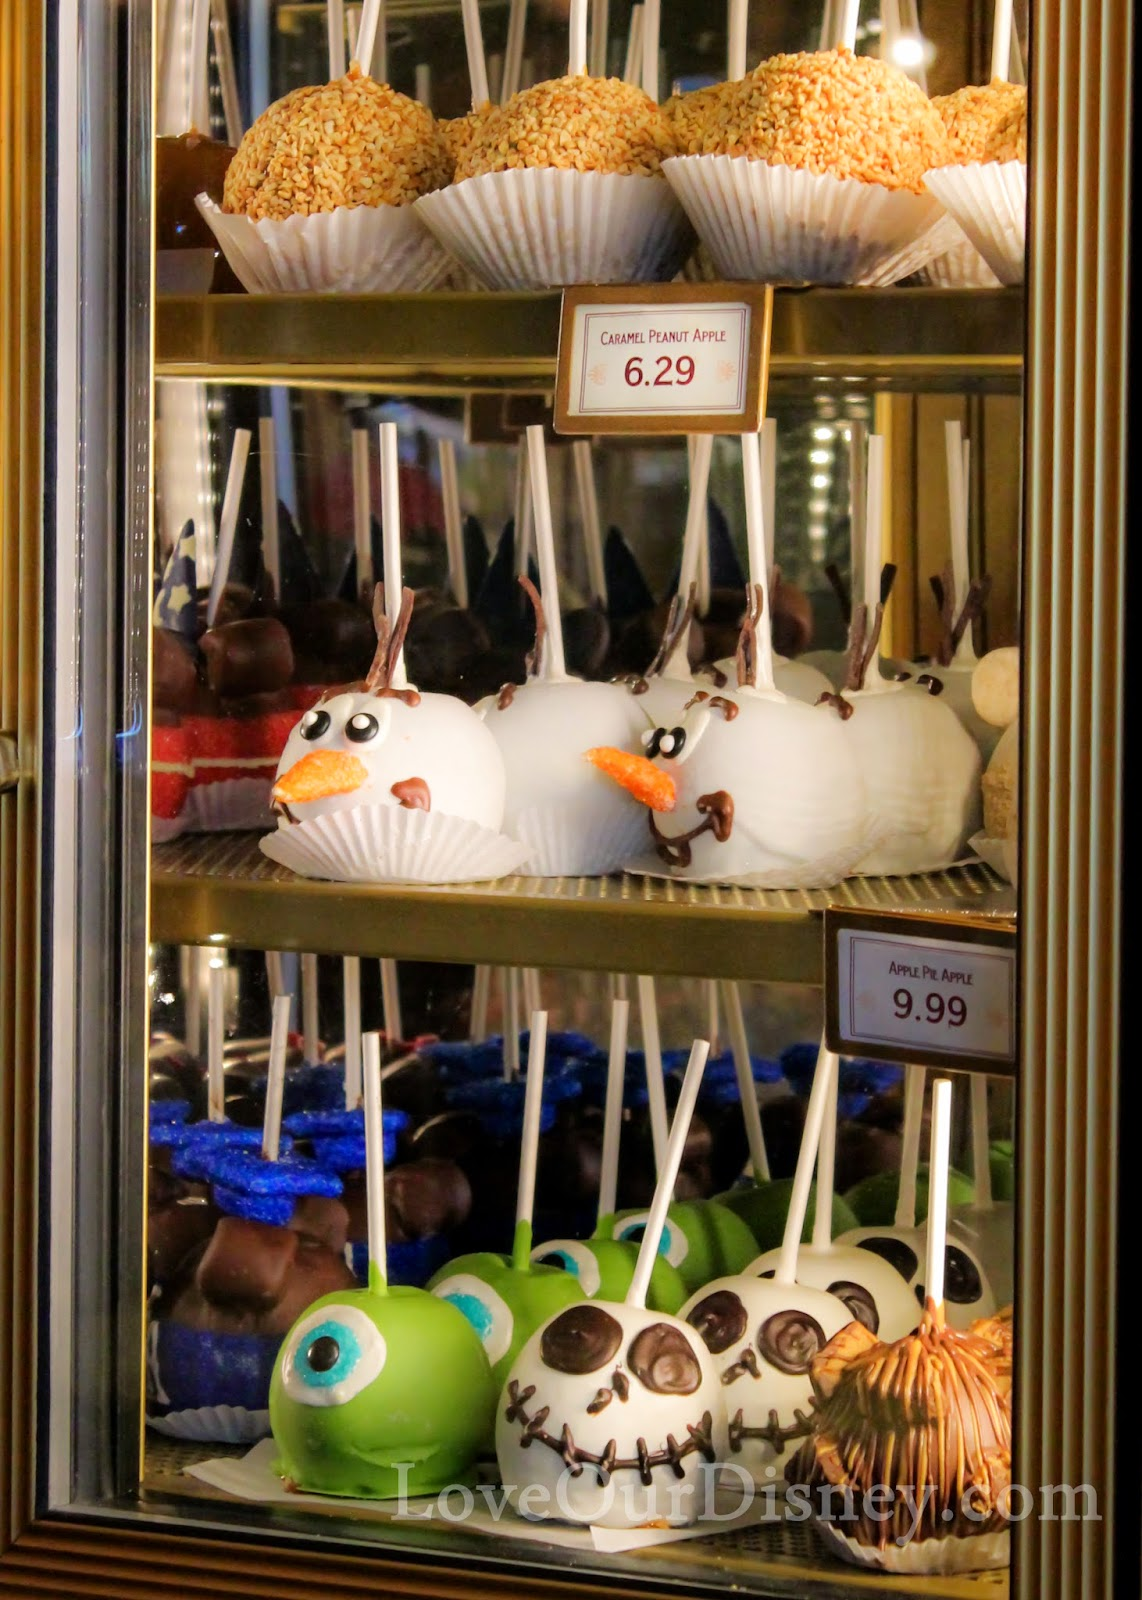 Check out these Disney themed candied apples at Disneyland's Candy Palace. LoveOurDisney.com